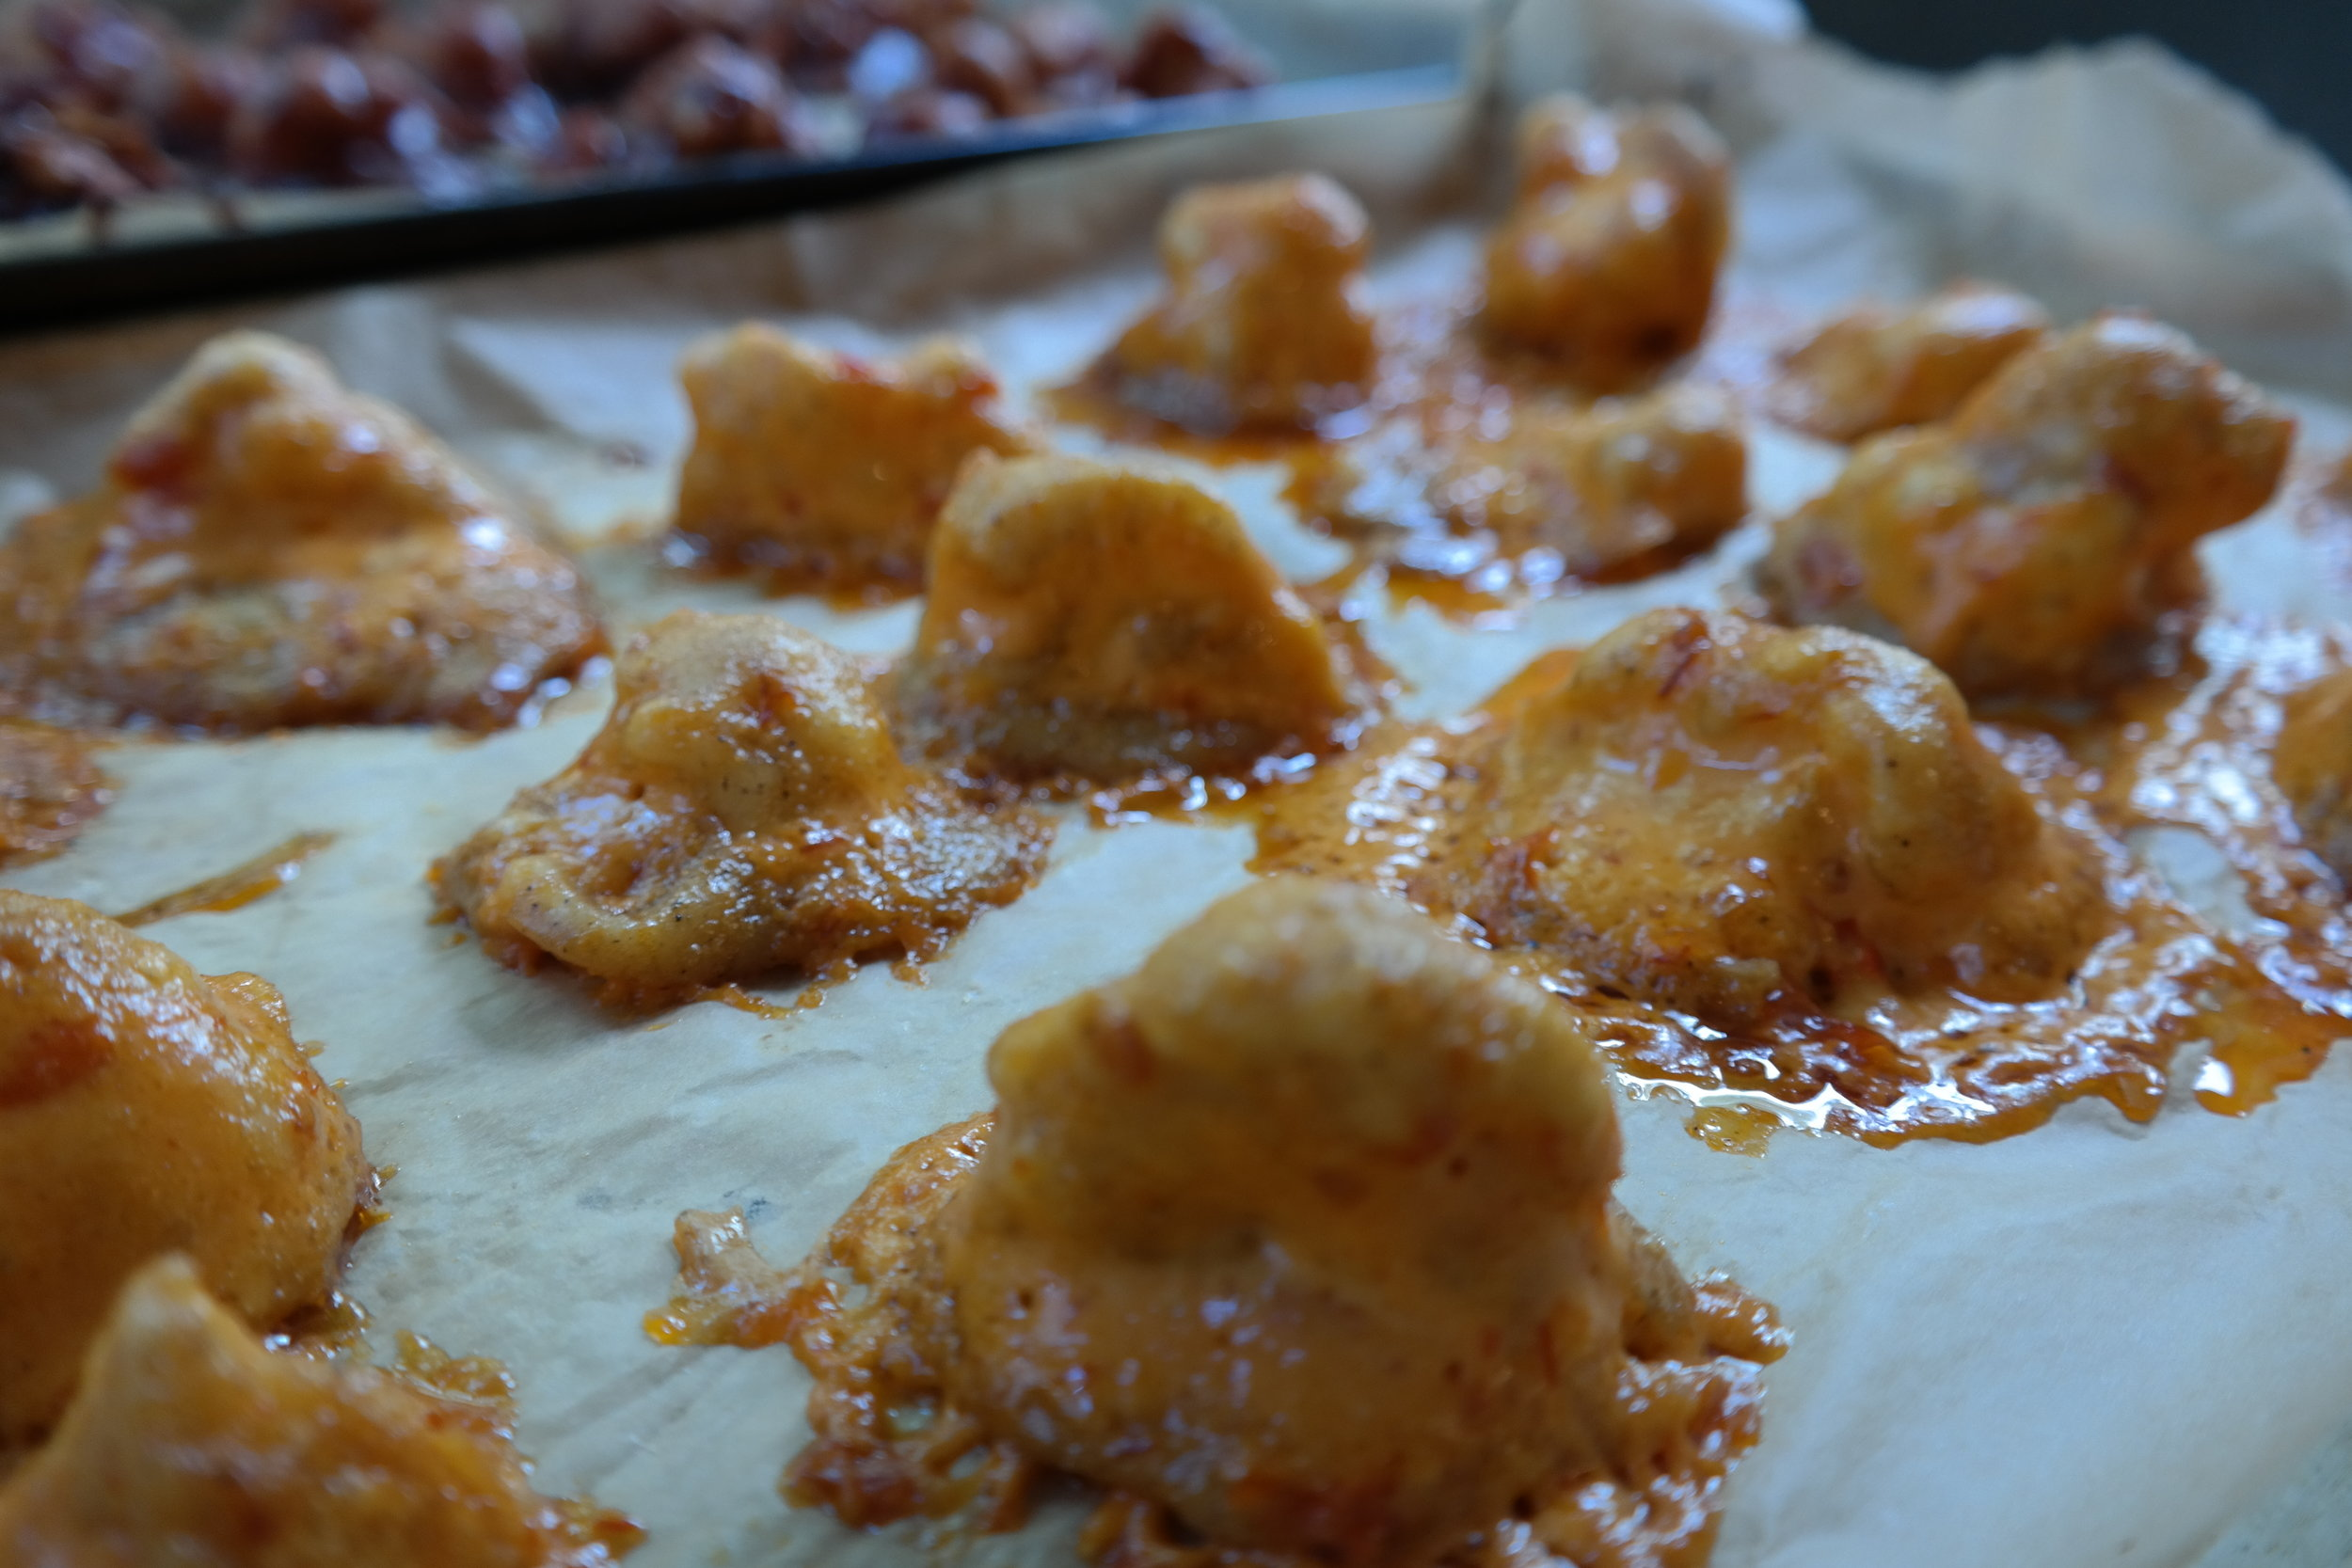 Cauliflower bites hot out of the oven